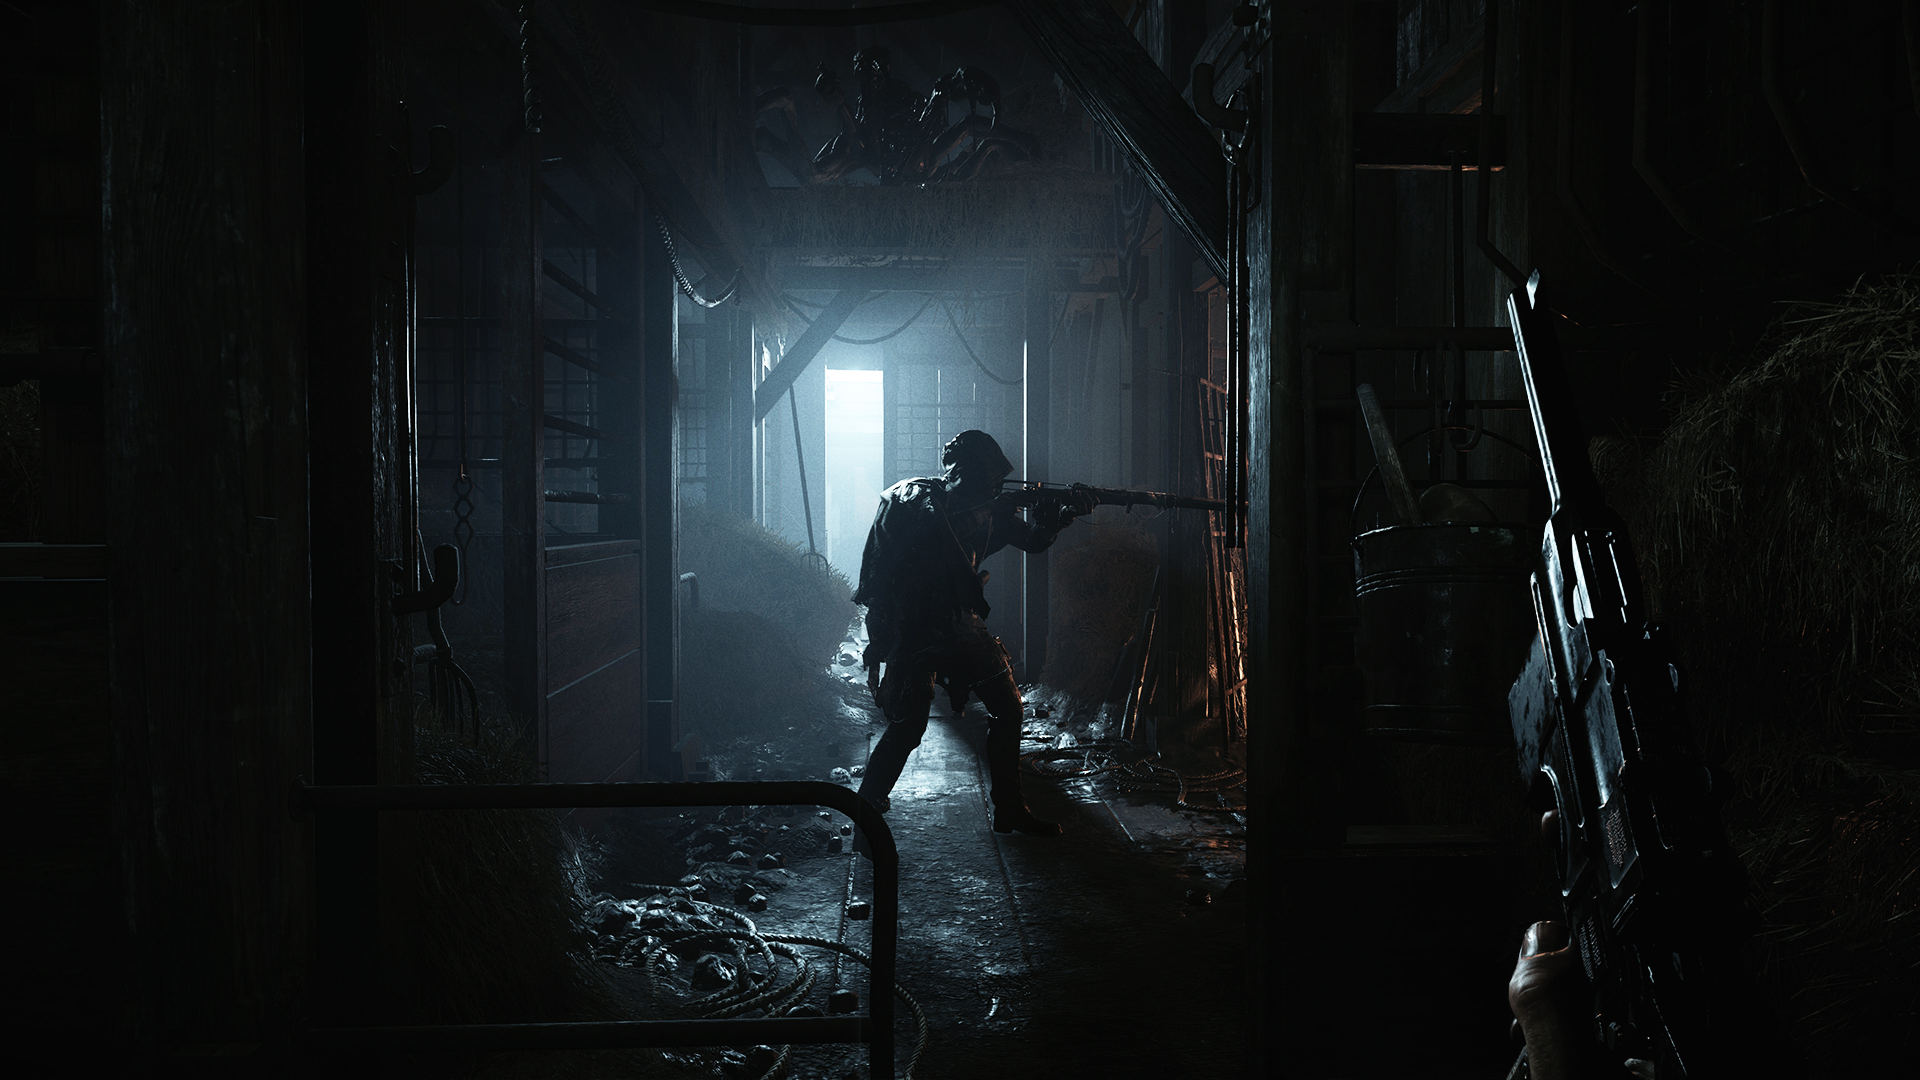 Gamers in Hunt: Showdown dawdle fastidiously and quietly by a dimly lit inner home.